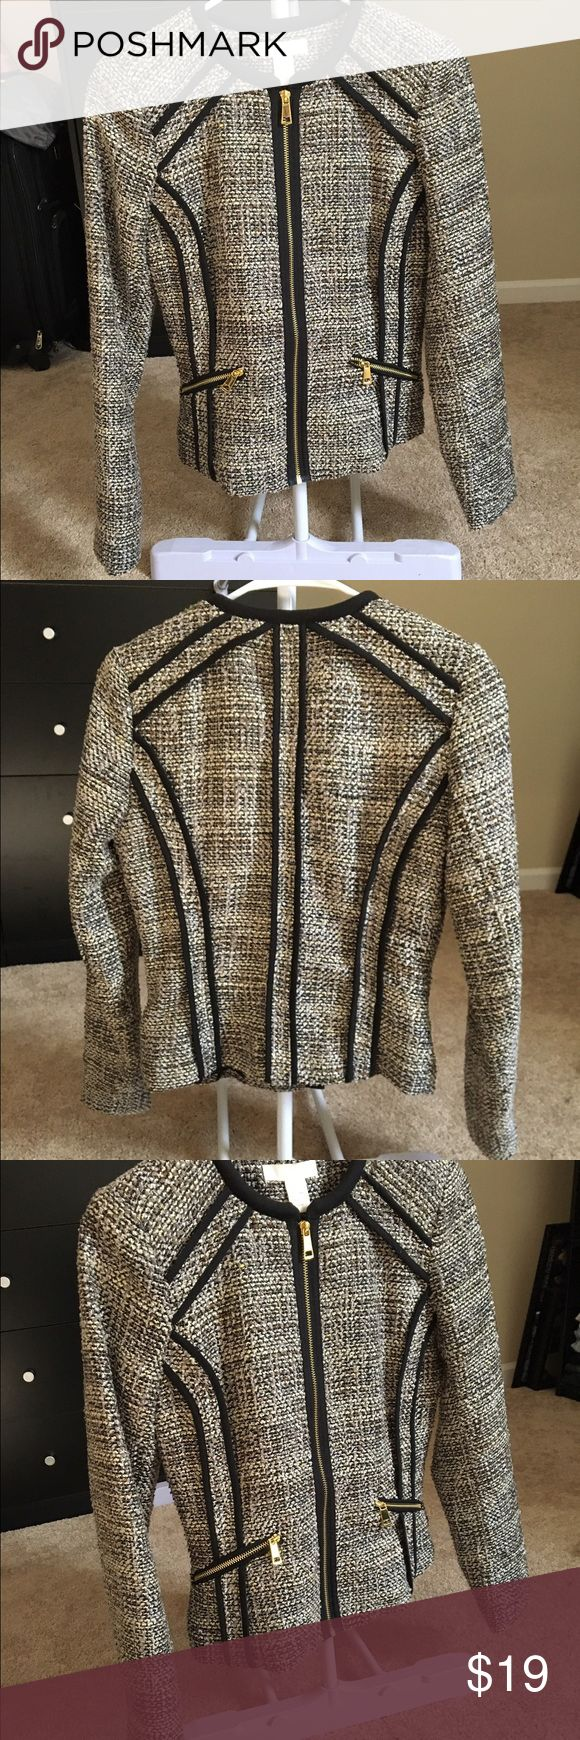 H&M Jacket Beautiful pattern jacket with hints of cream, gray and black colors and Gold zippers. In excellent condition!! The jacket is a size 6 but I am size Small and fits me comfortably. H&M Jackets & Coats Blazers